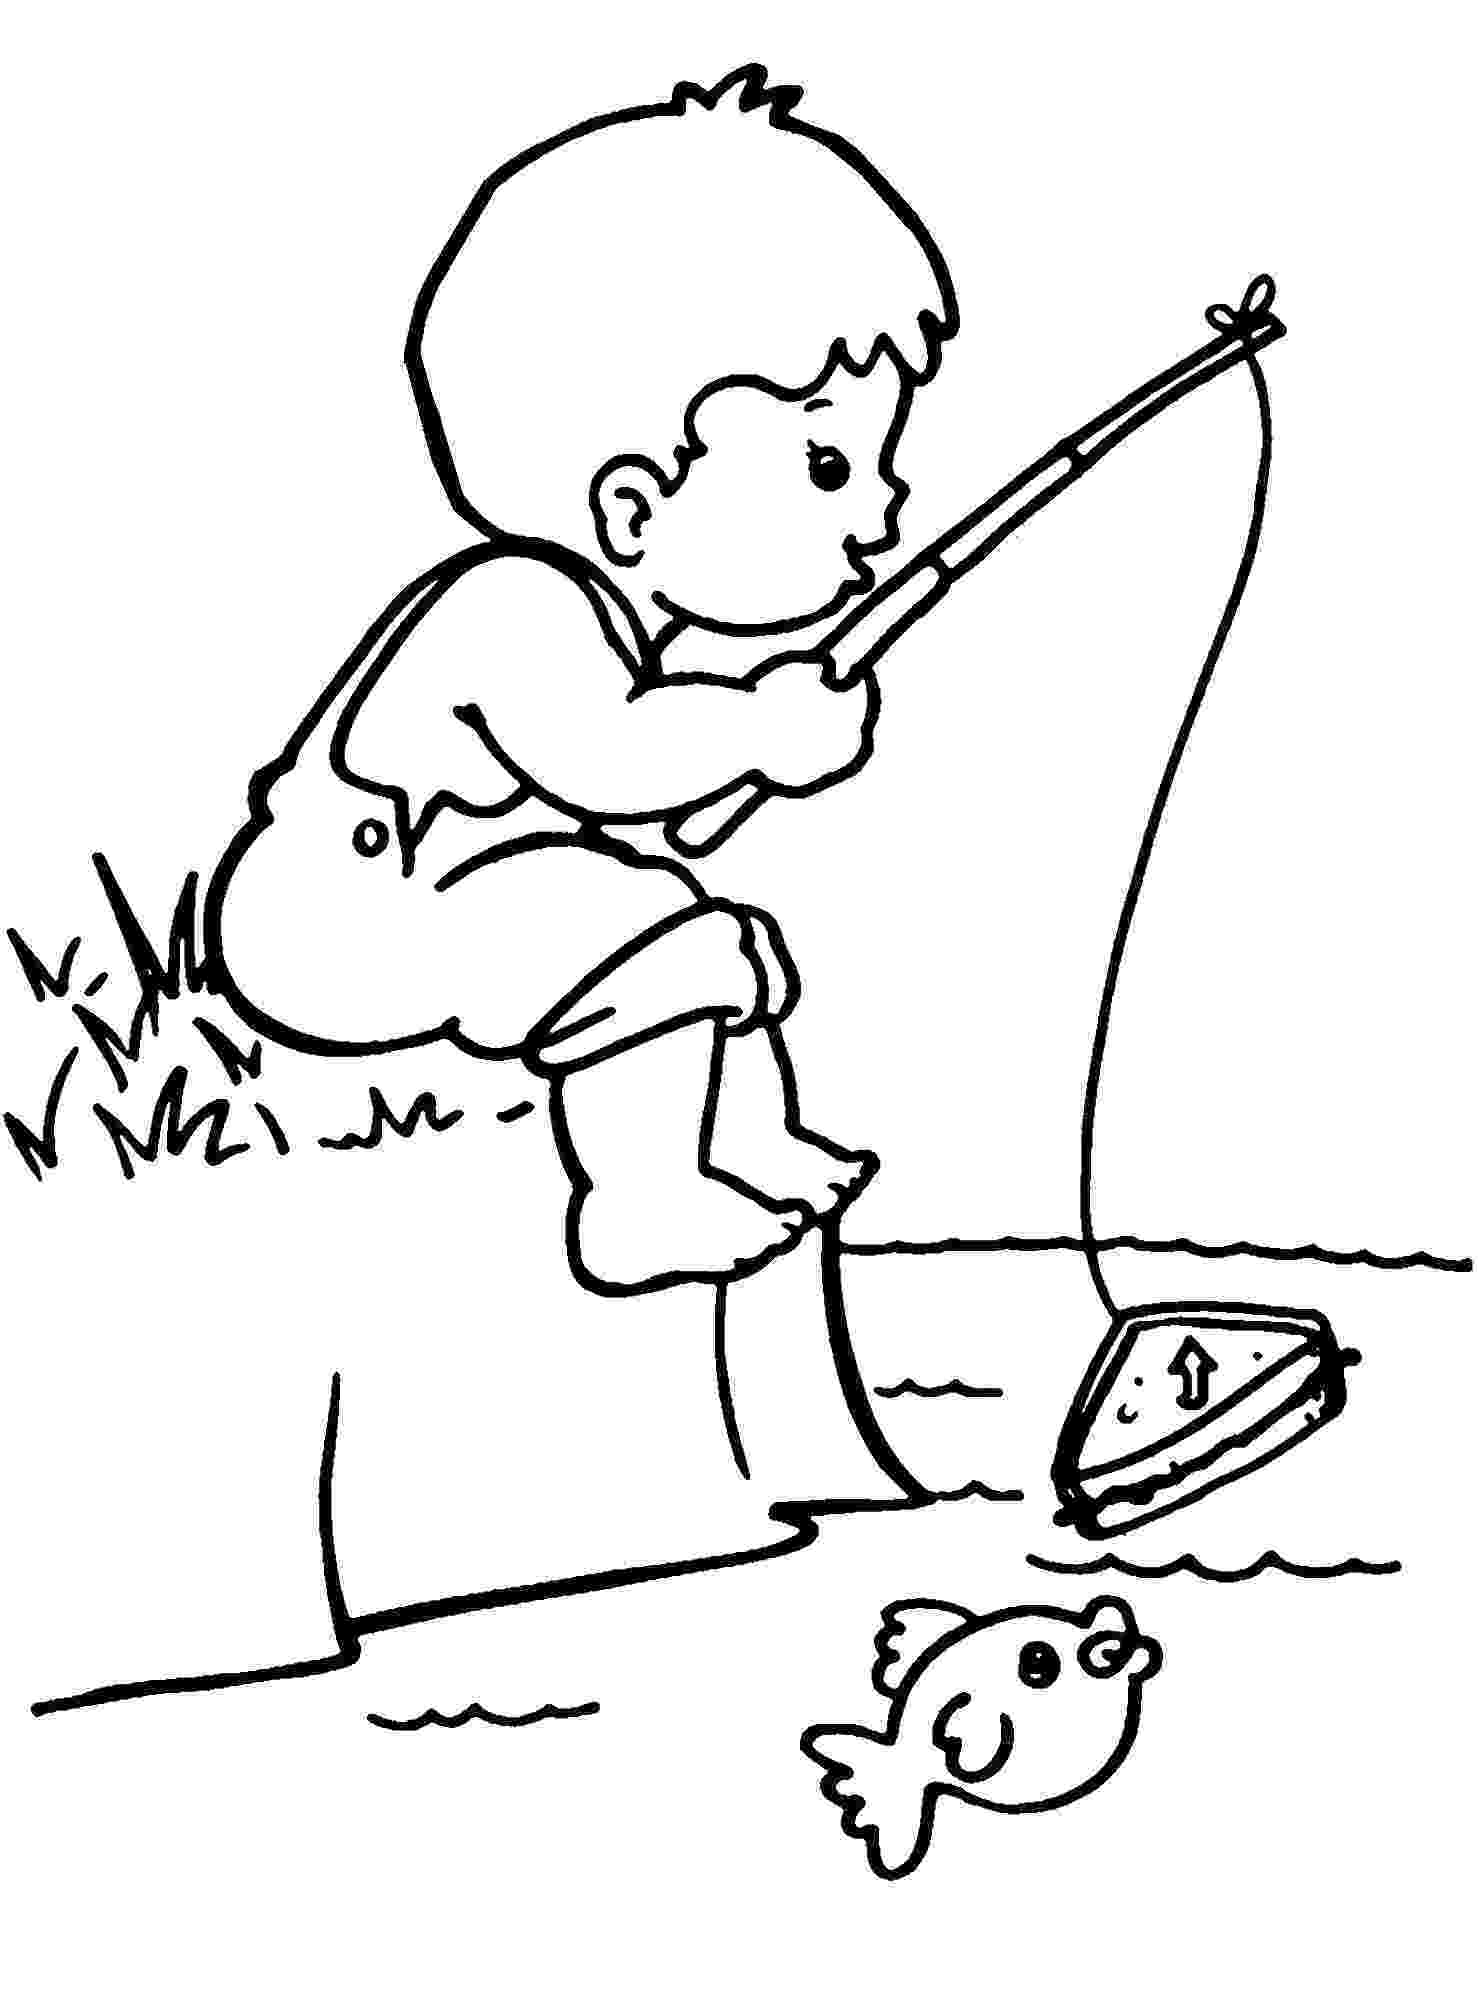 printable coloring pages for boys free printable boy coloring pages for kids printable for coloring boys pages